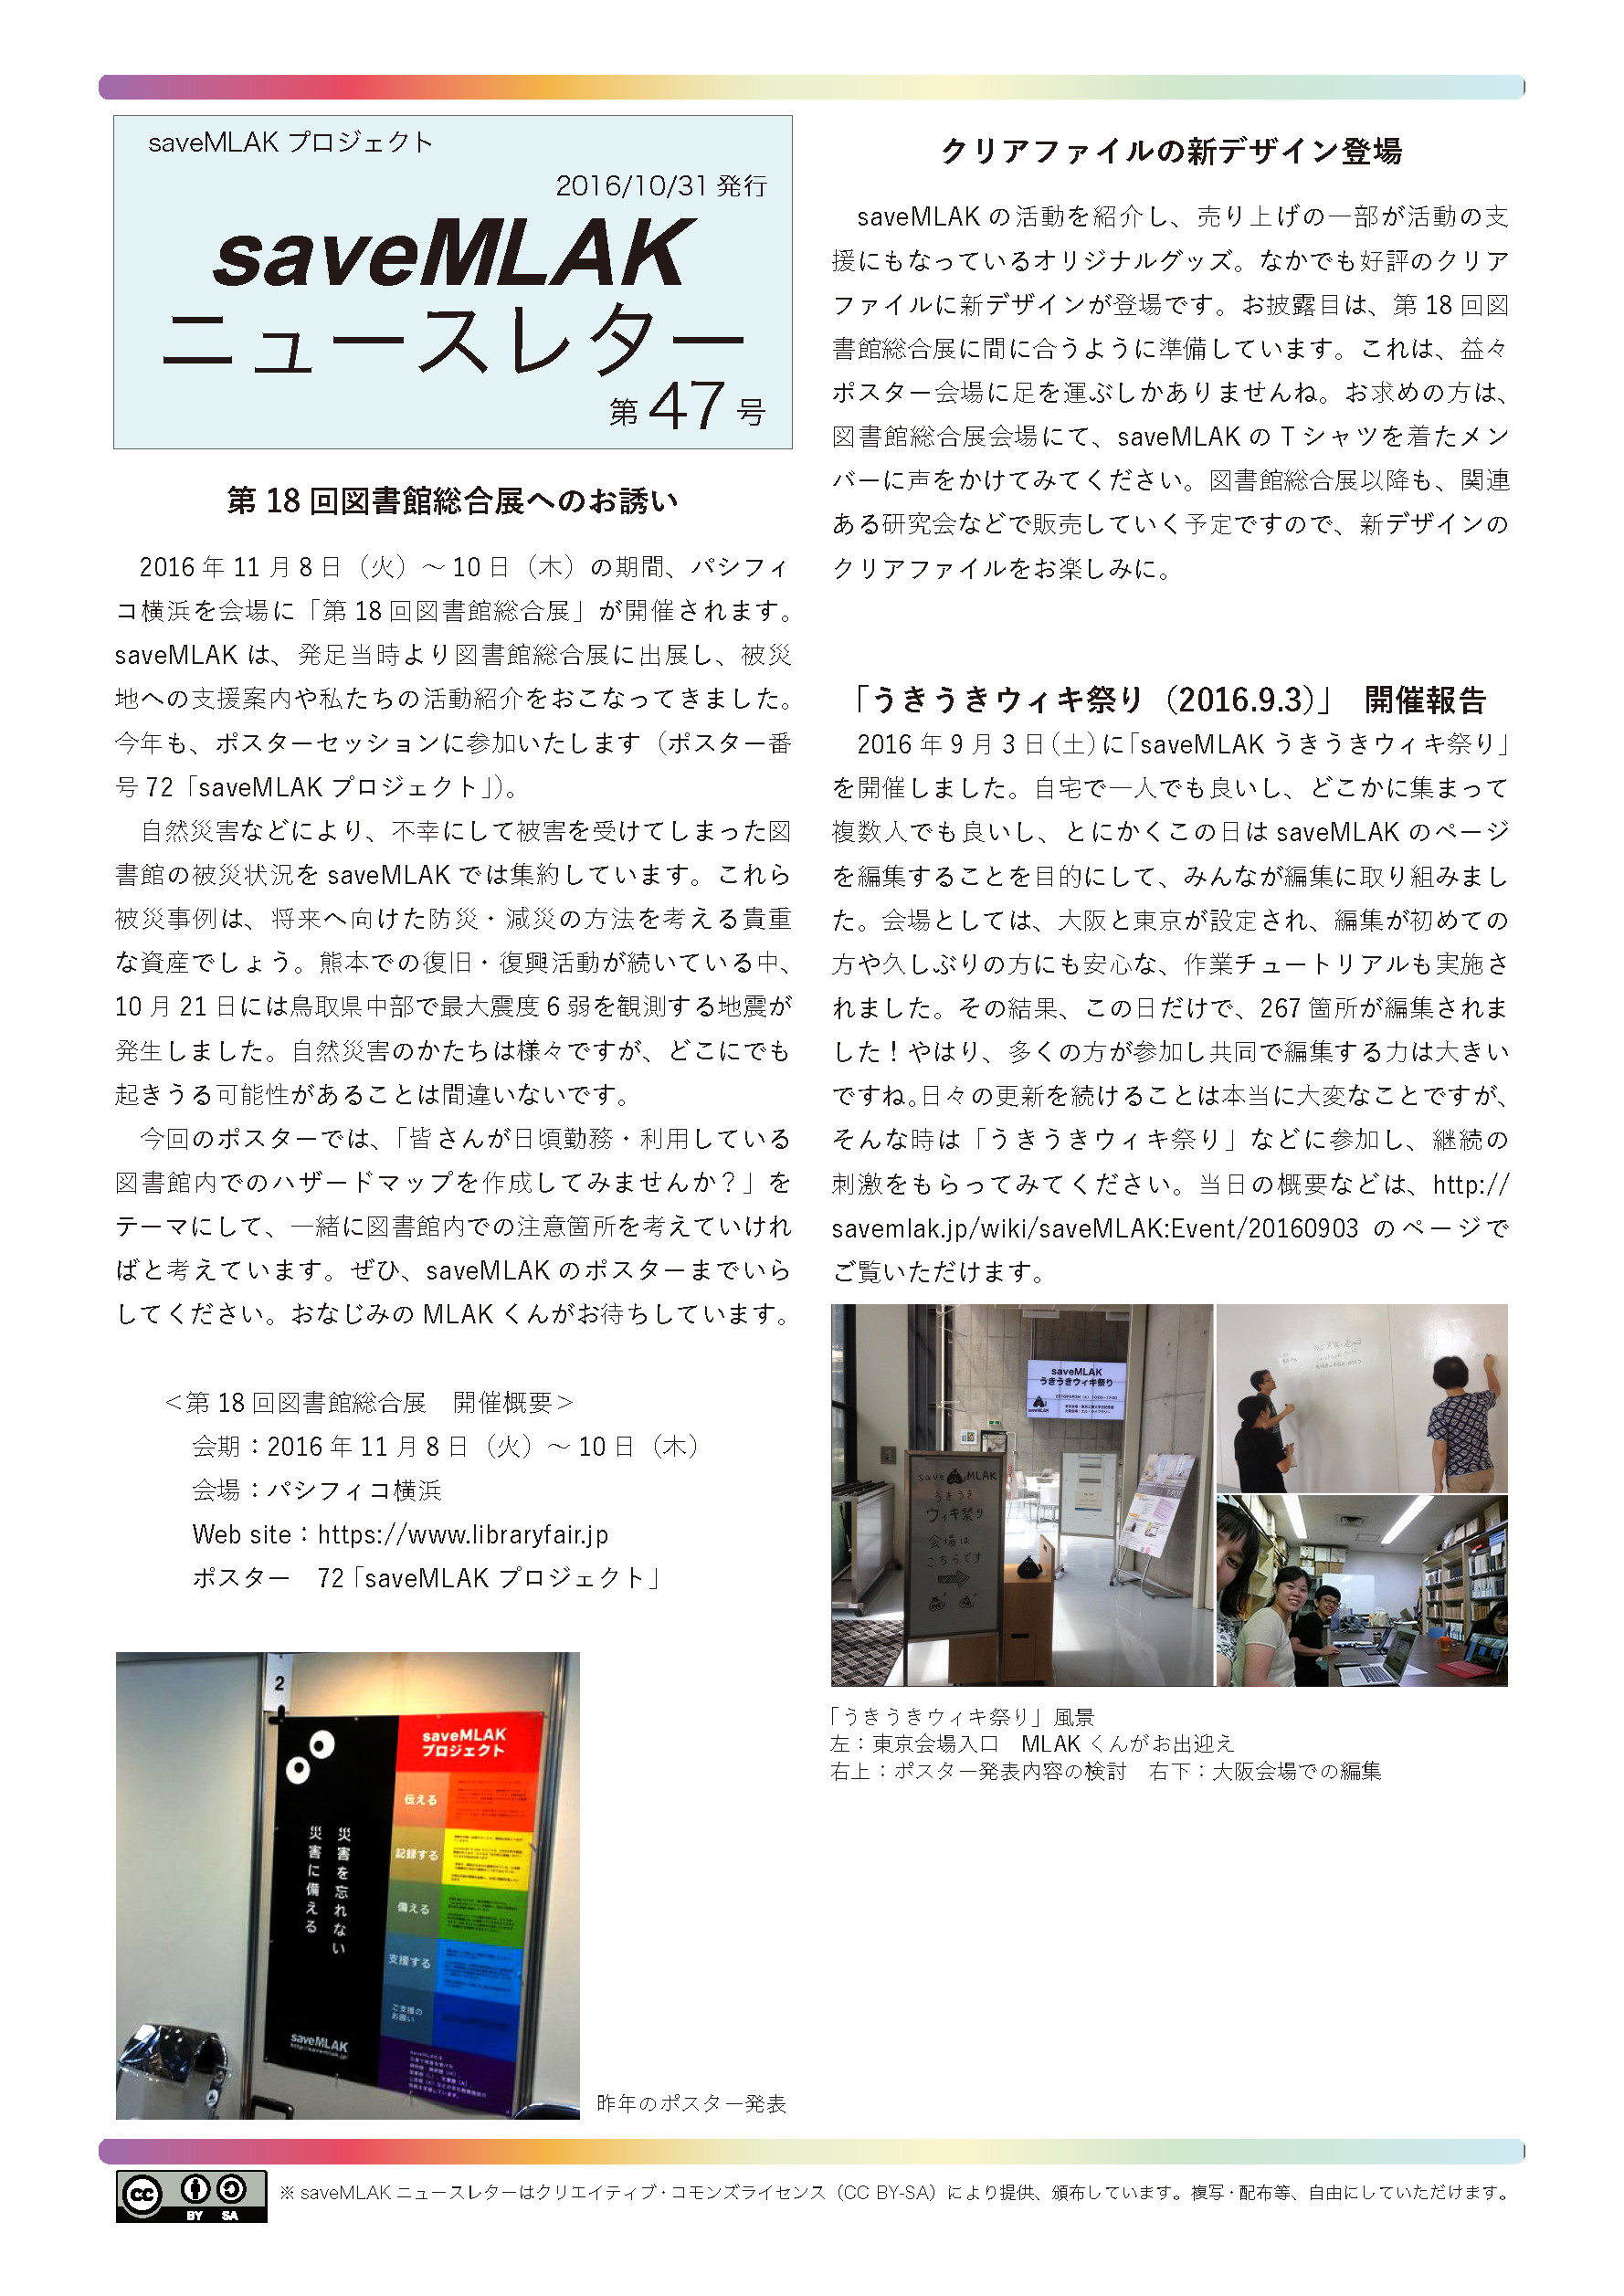 saveMLAK Newsletter 201609and10 ページ 1.png